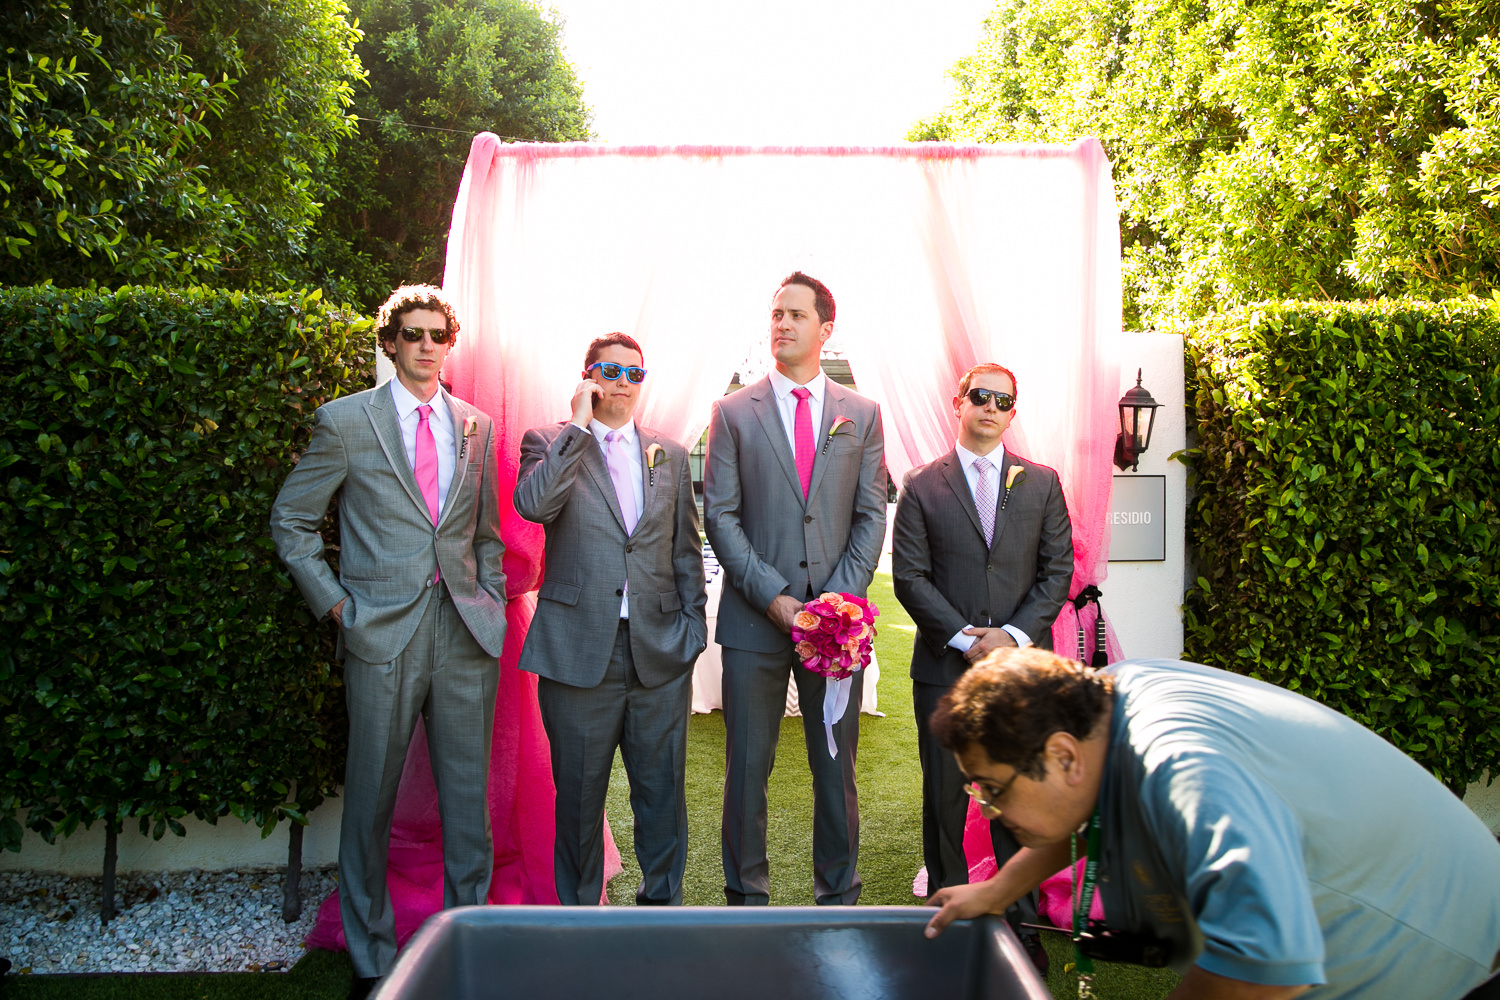 Avalon Palm Springs Photographer - Groomsmen Looking Good